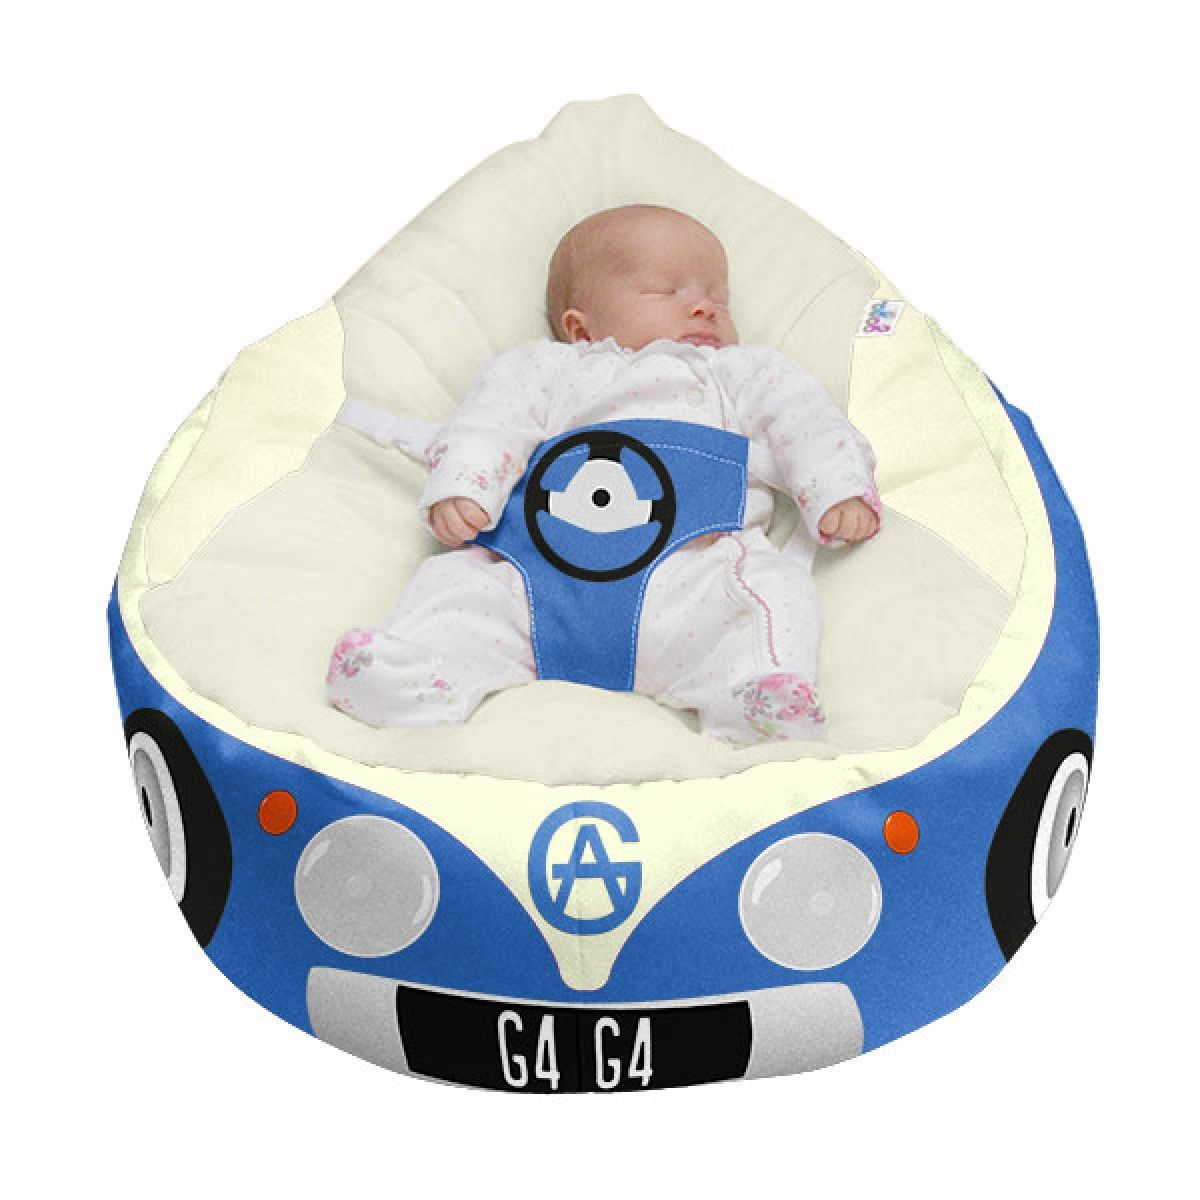 Buy Gaga Luxury Cuddlesoft Baby Bean Bag   Iconic Campervan Blue From Our  Pouffes, Bean Bags U0026 Cubes Range At Tesco Direct.